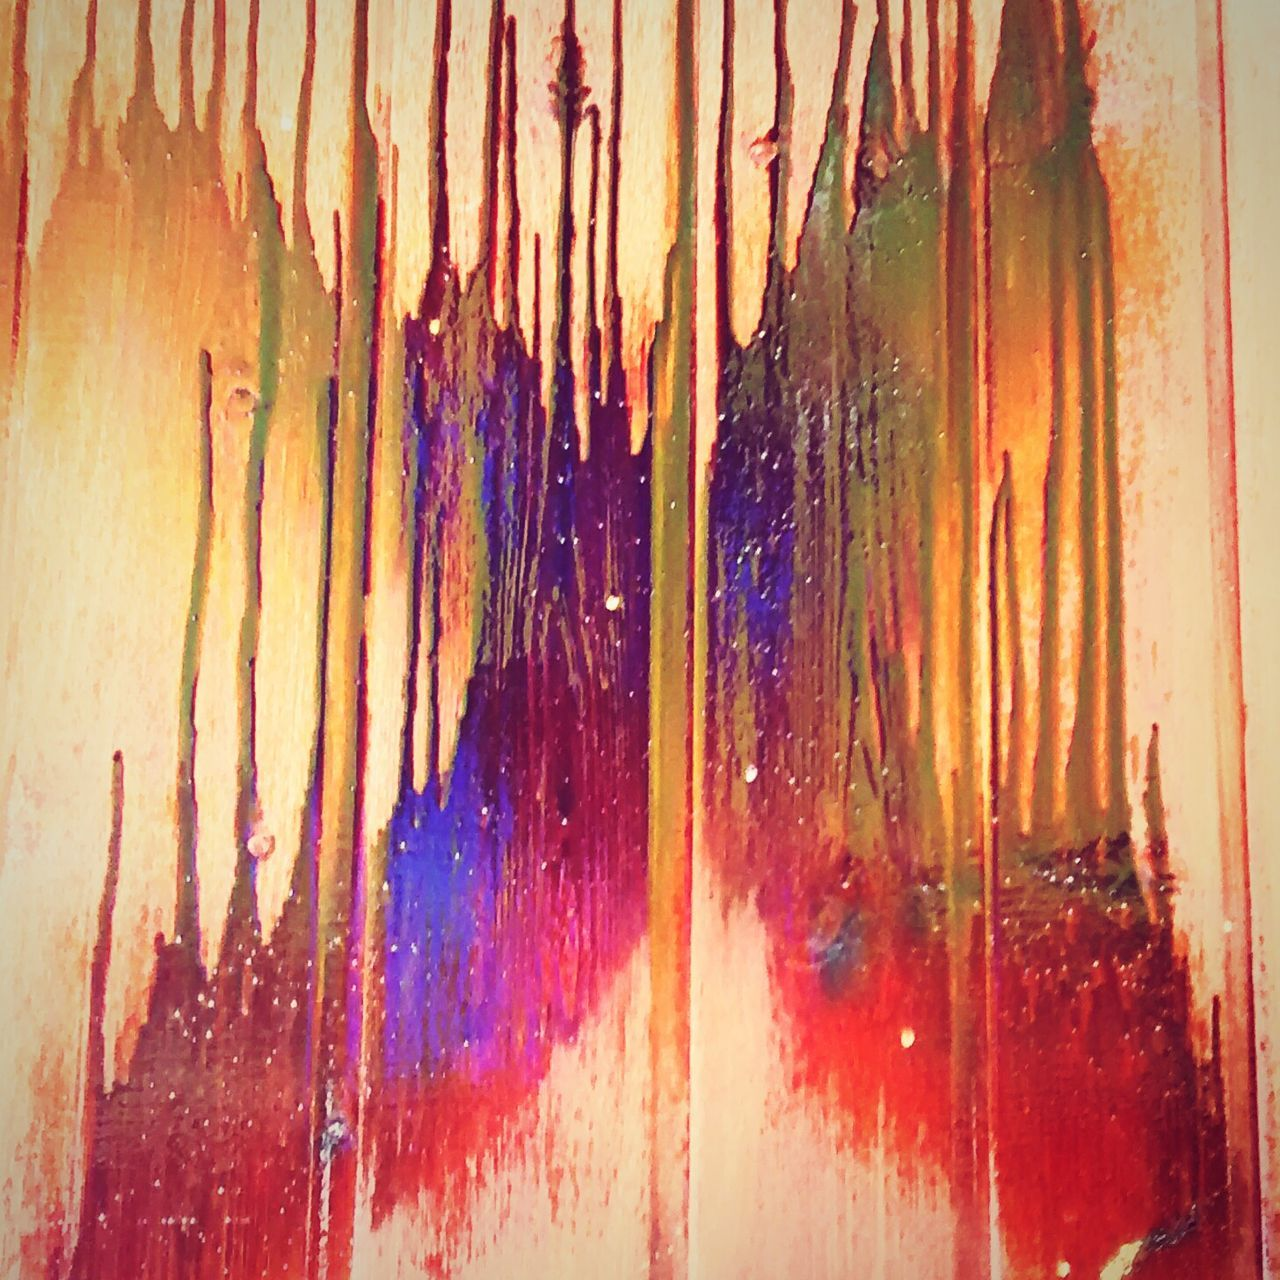 paint, indoors, multi colored, no people, close-up, day, dripping